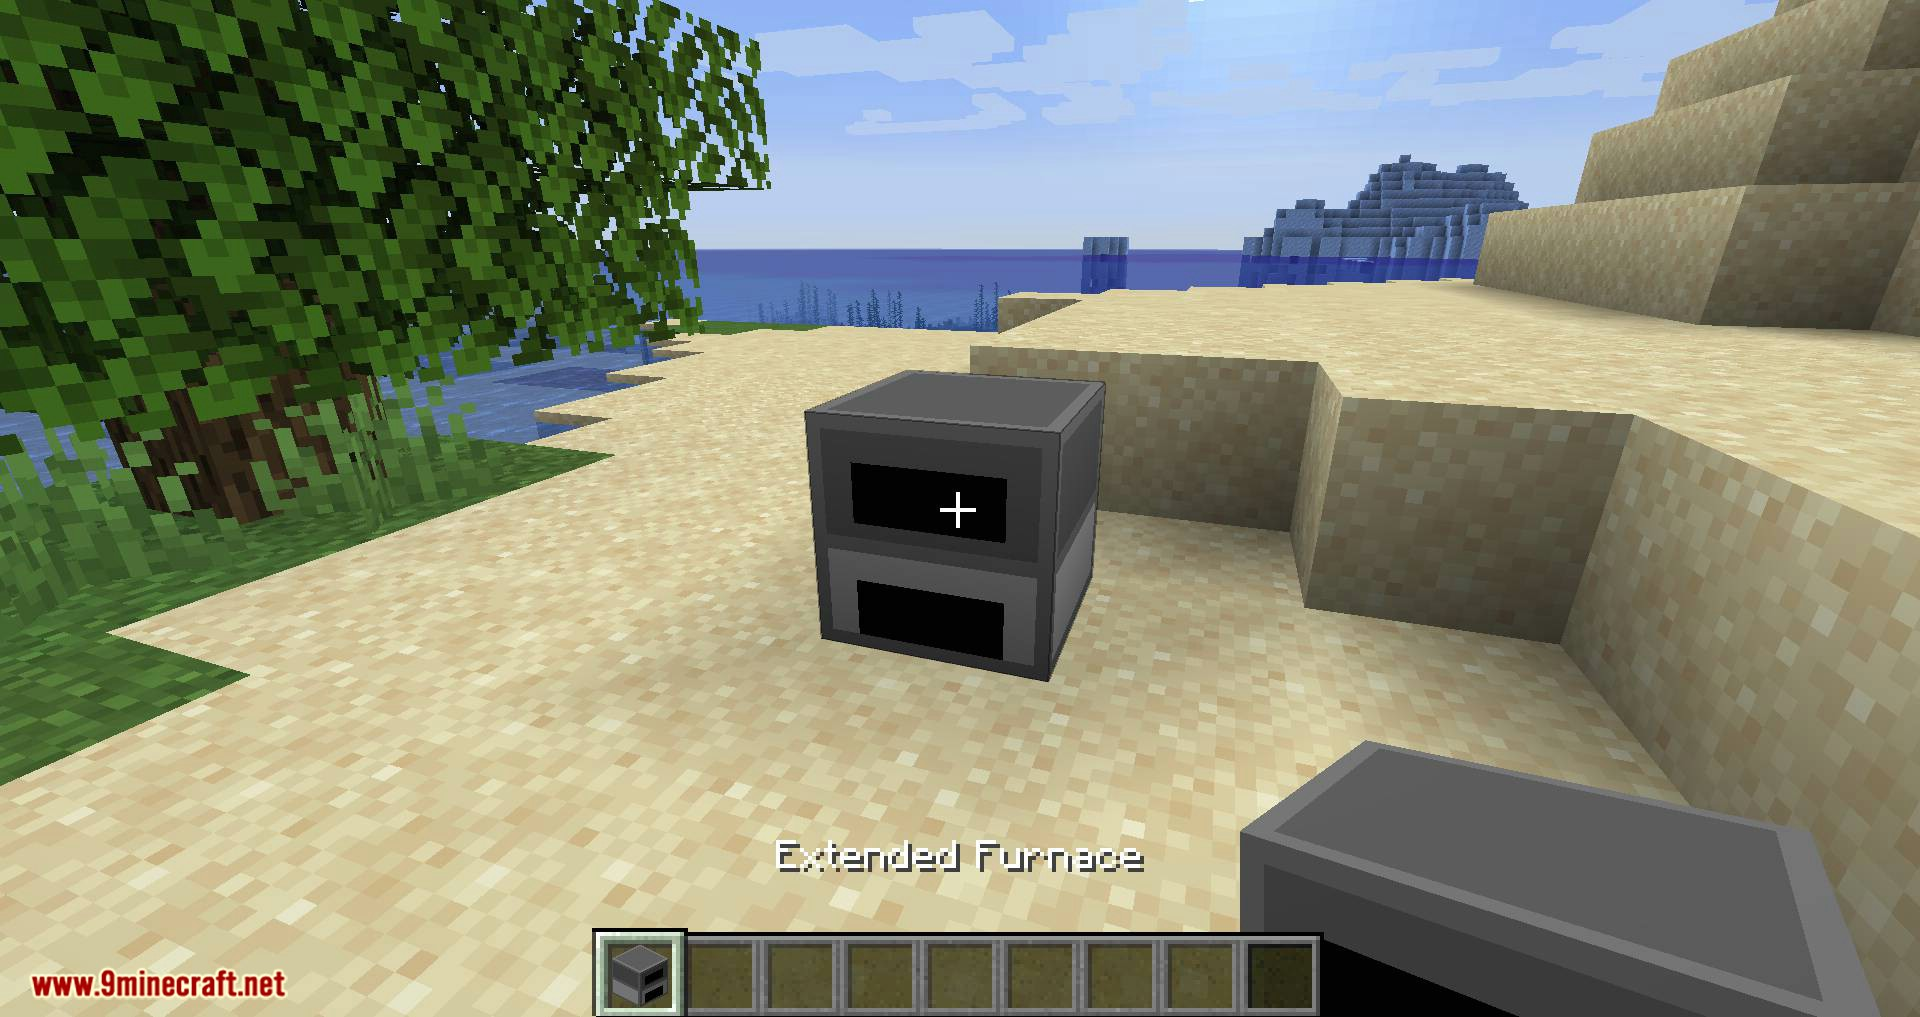 Extended Furnace mod for minecraft 01